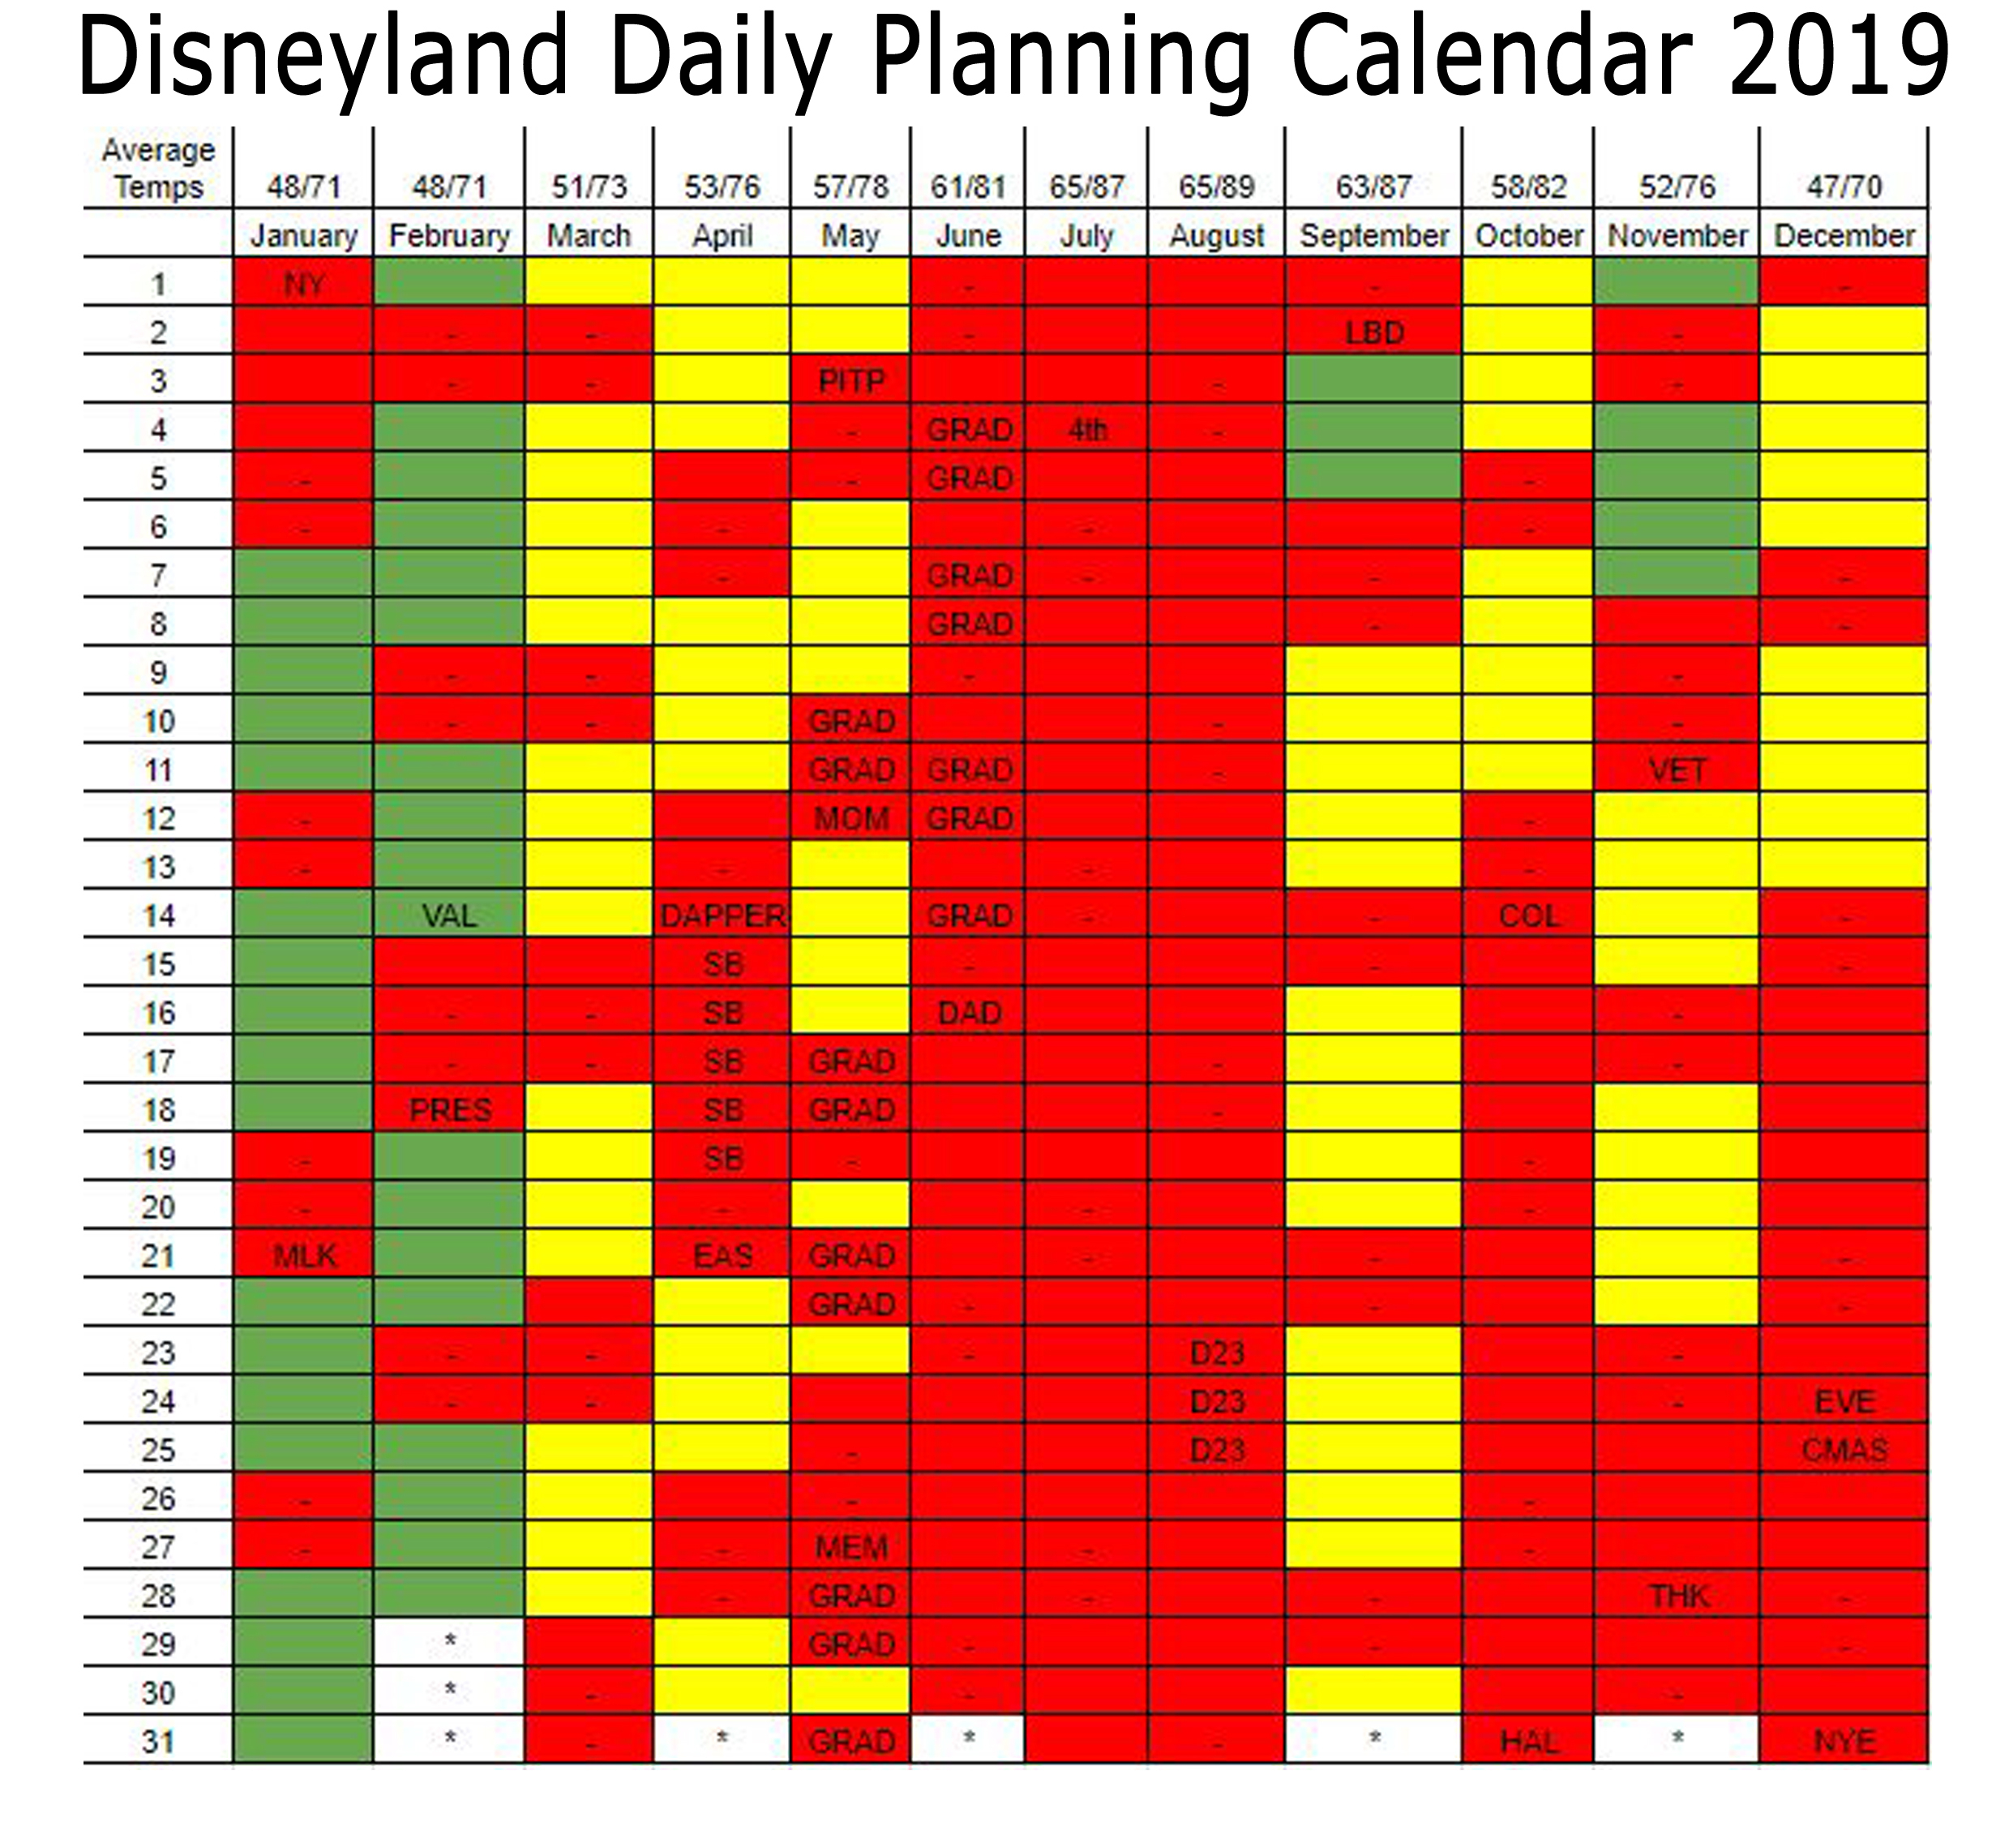 Disneyland Crowd Chart  Bobi.karikaturize intended for Dads Crowd Calendar 2020